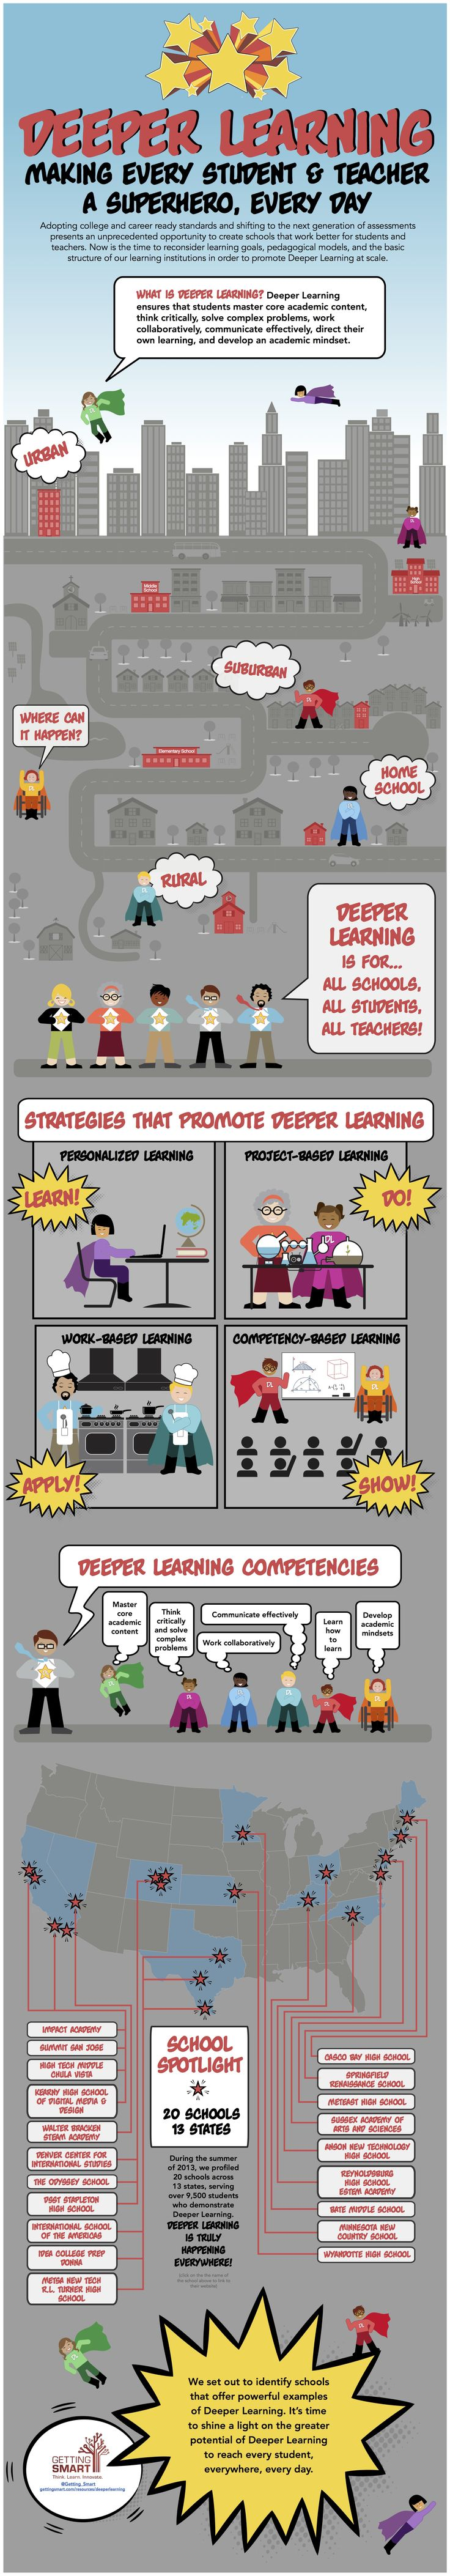 Infographic: Deeper Learning Making Every Student & Teacher A Superhero, Every Day - Getting Smart